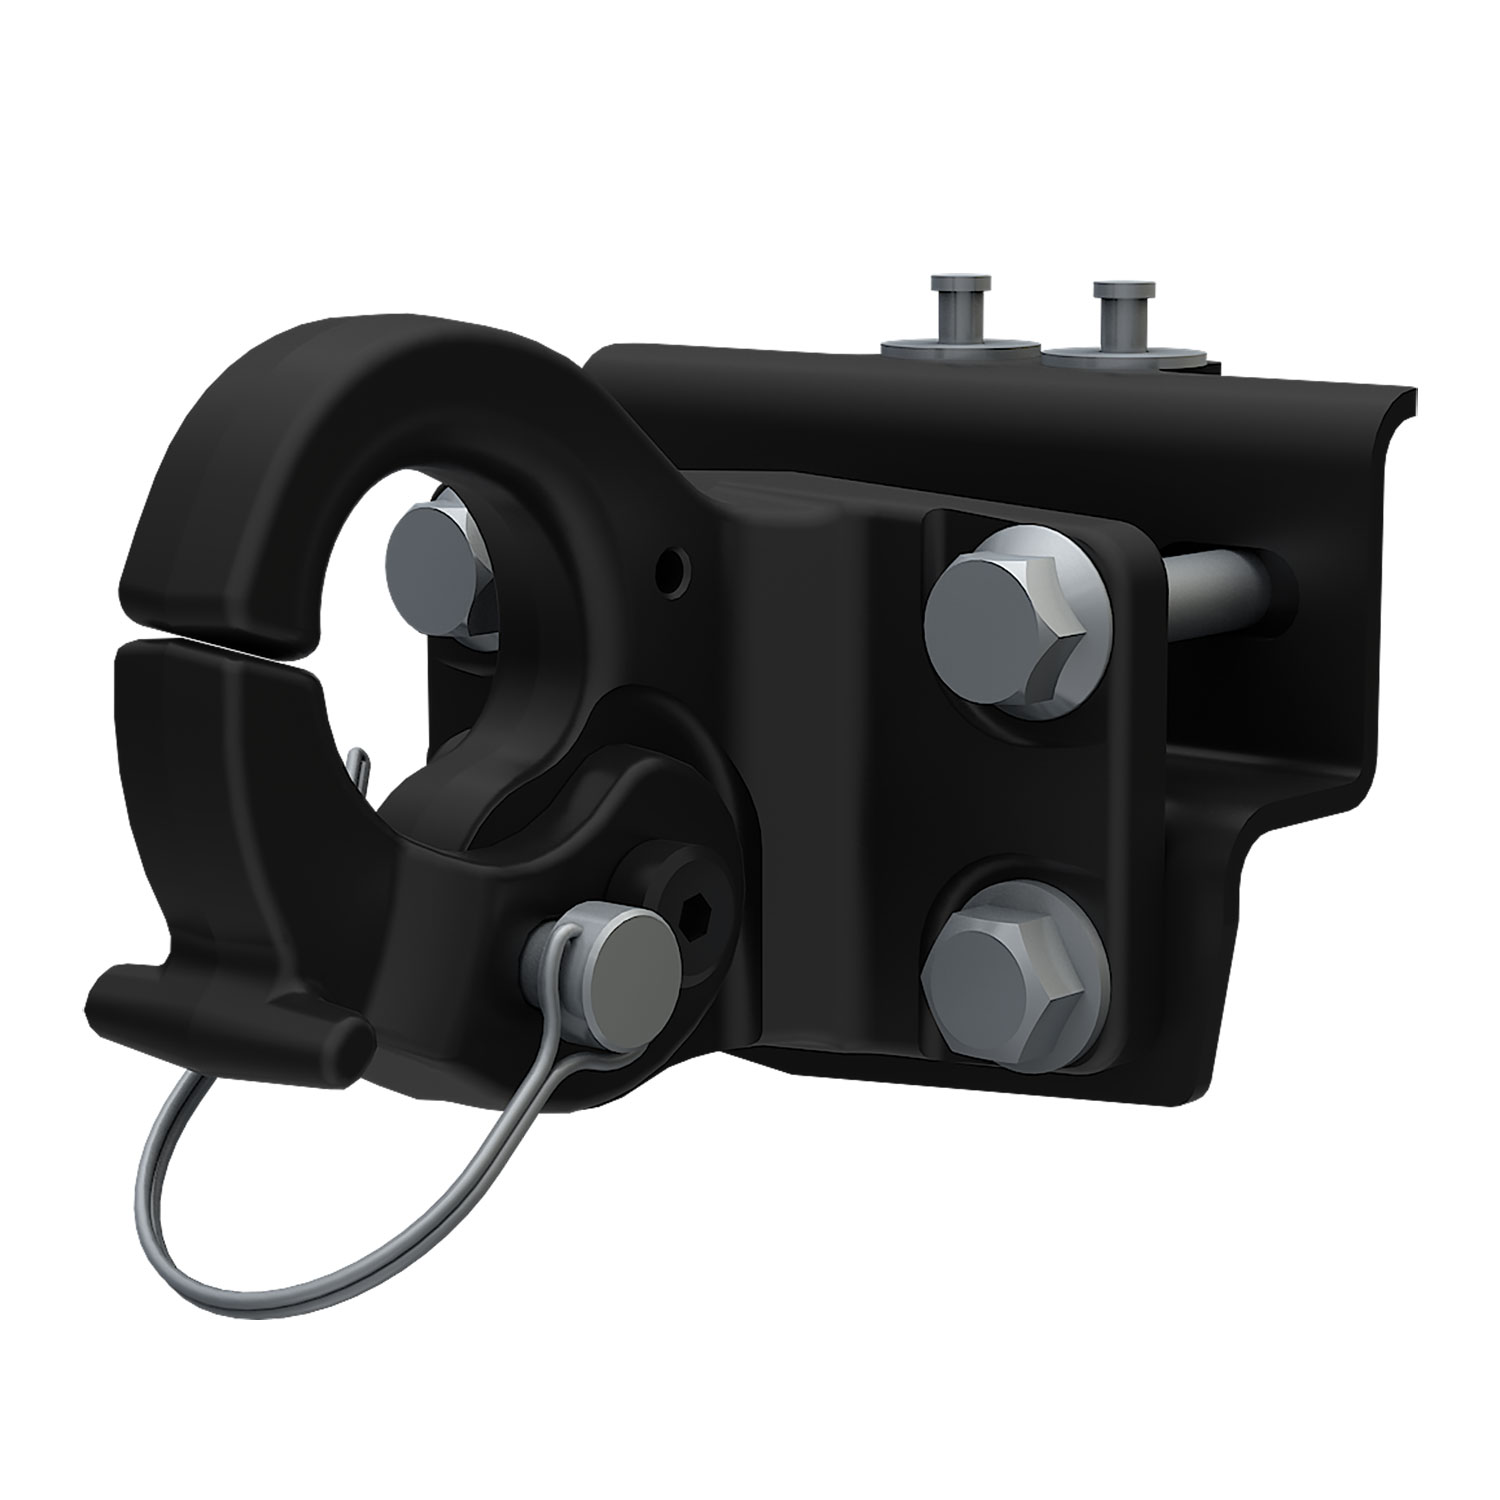 J-Hook Receiver Hitch